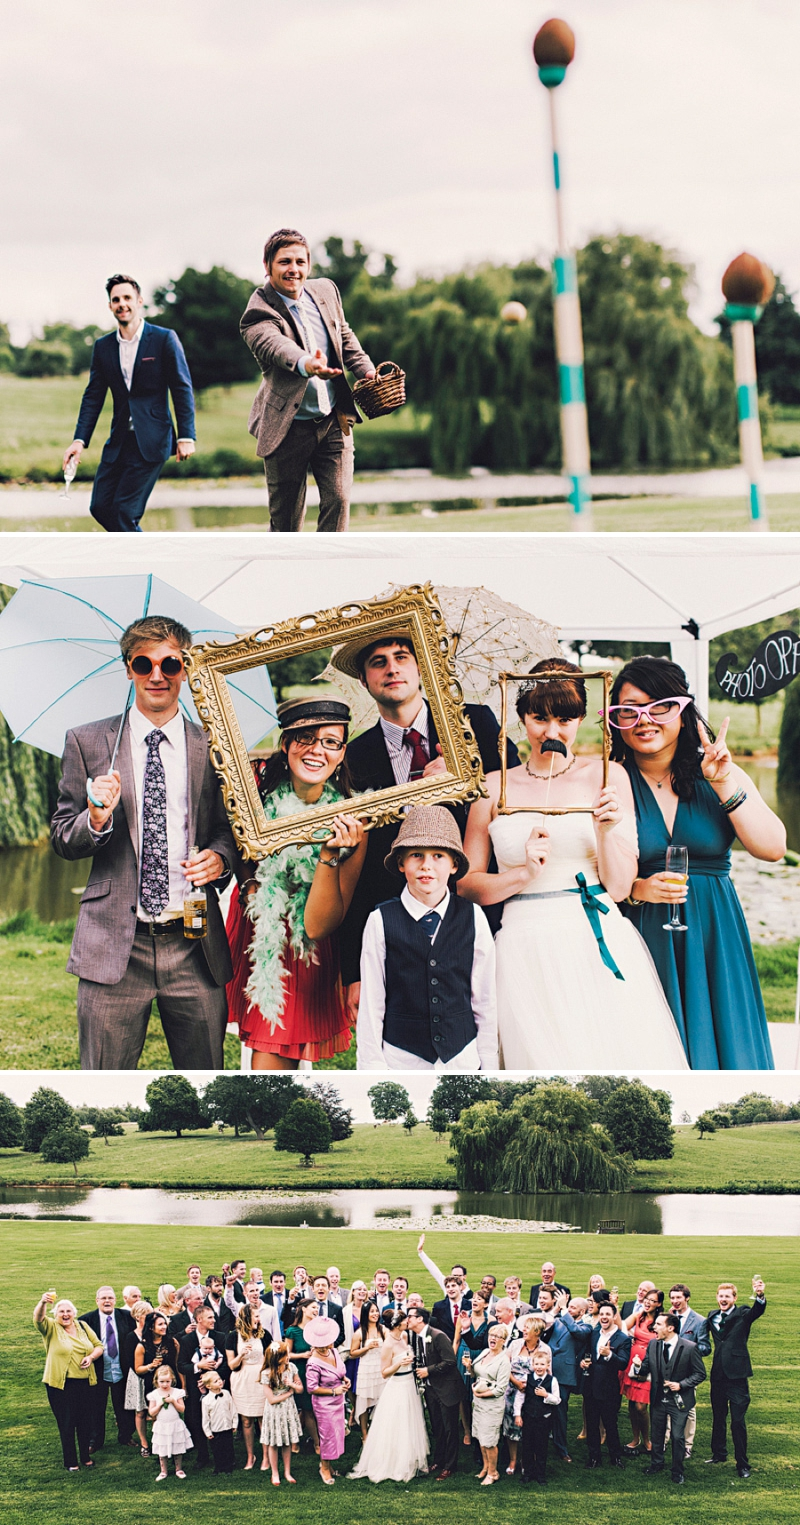 An alternative wedding with bespoke wedding dress and home made blue bridesmaids gowns. outdoor venue with rustic garden games and reception teepee. Photography by Steve Gerrard_0014